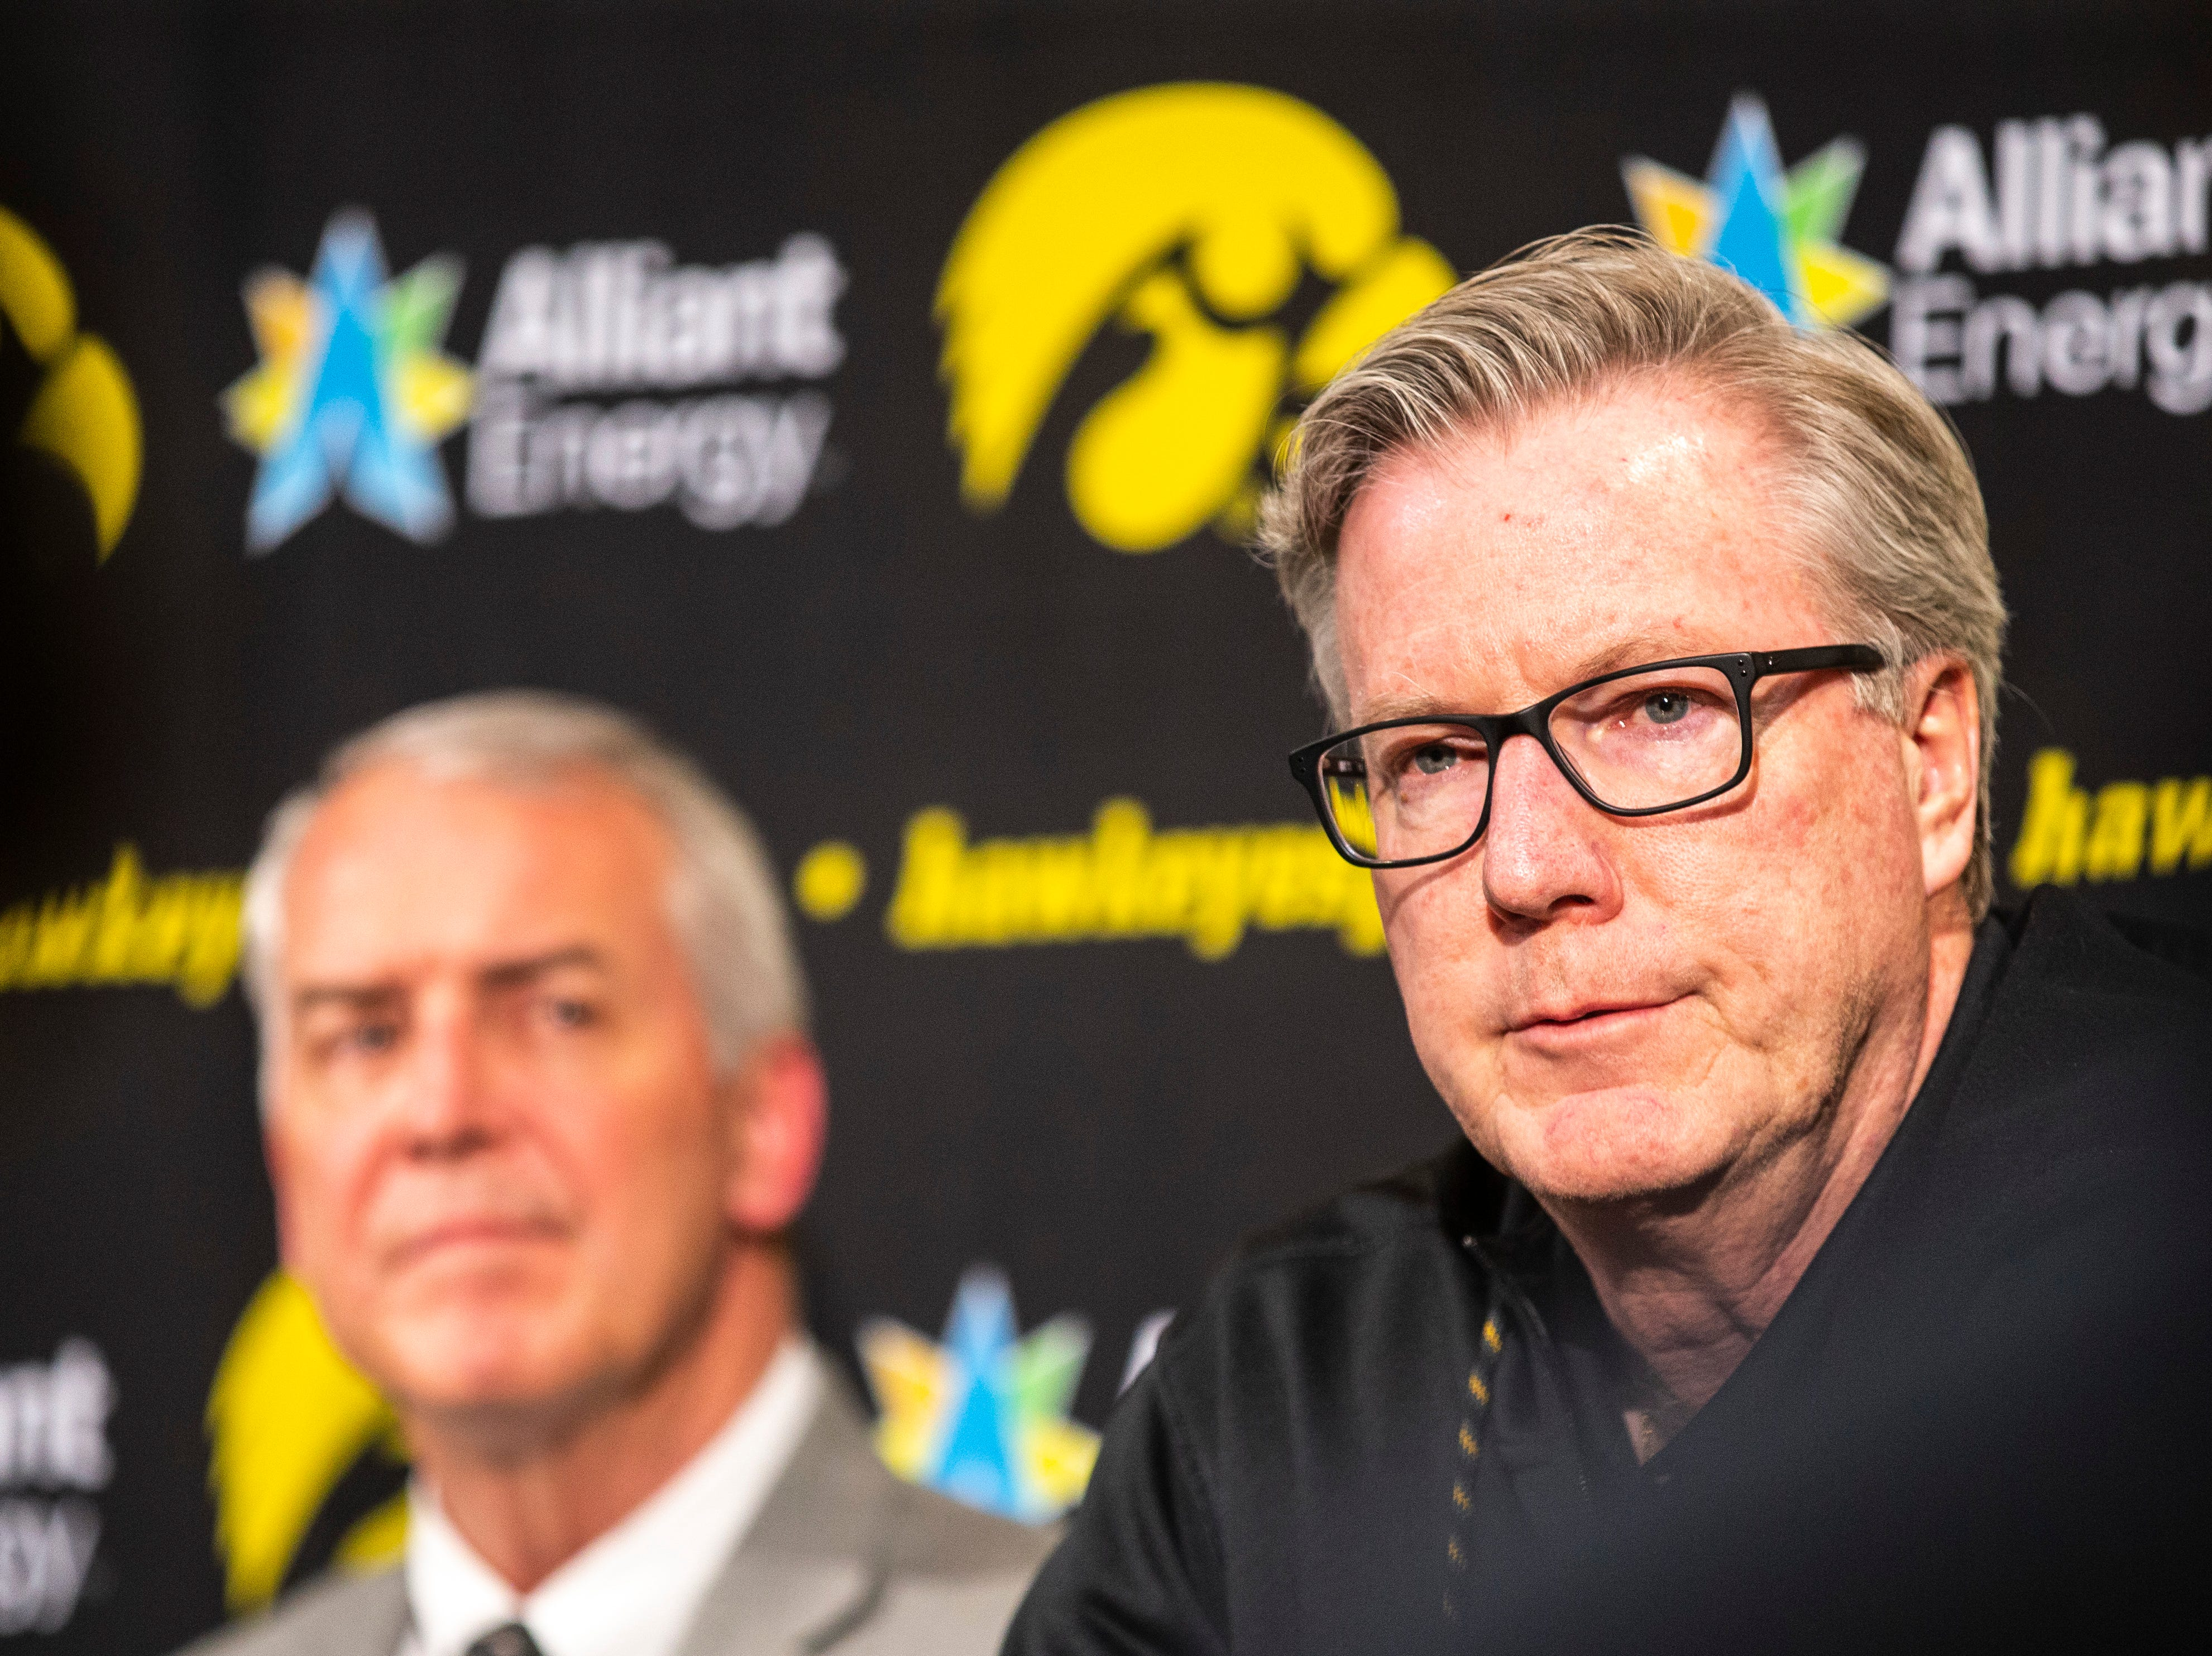 Iowa men's basketball head coach Fran McCaffery, right, speaks during a press conference with Iowa athletic director Gary Barta on Wednesday, Feb. 27, 2019, at Carver-Hawkeye Arena in Iowa City, Iowa.